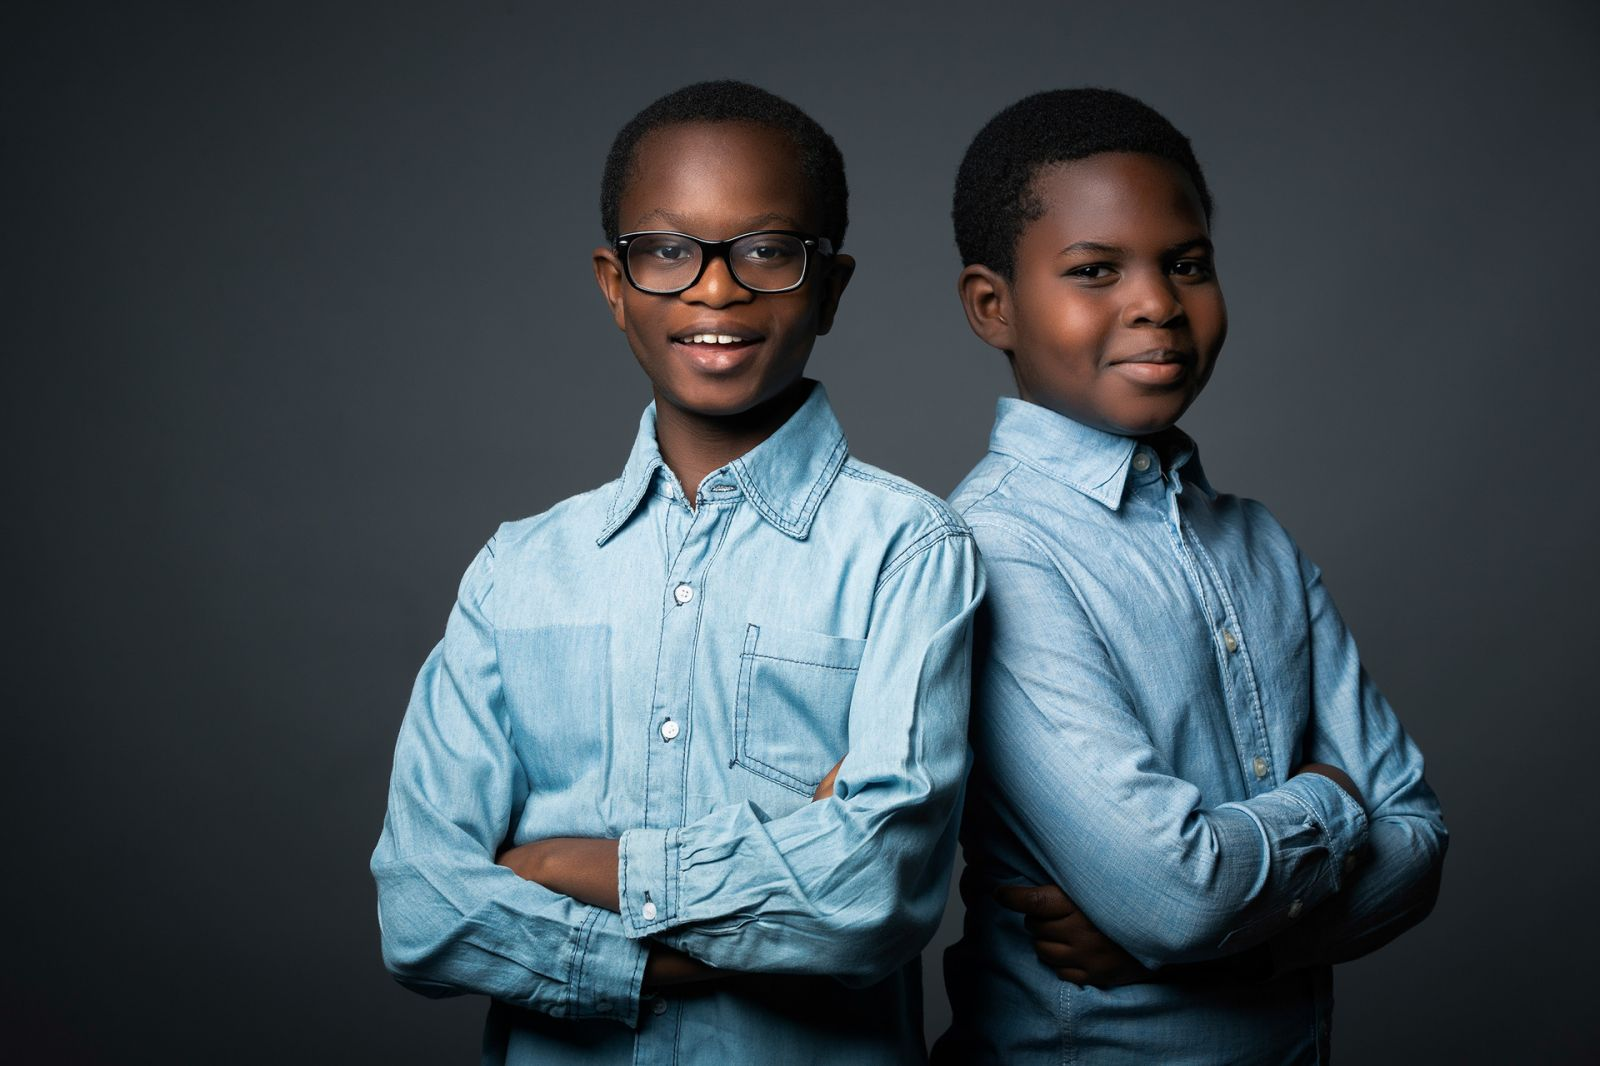 Portrait of two brothers